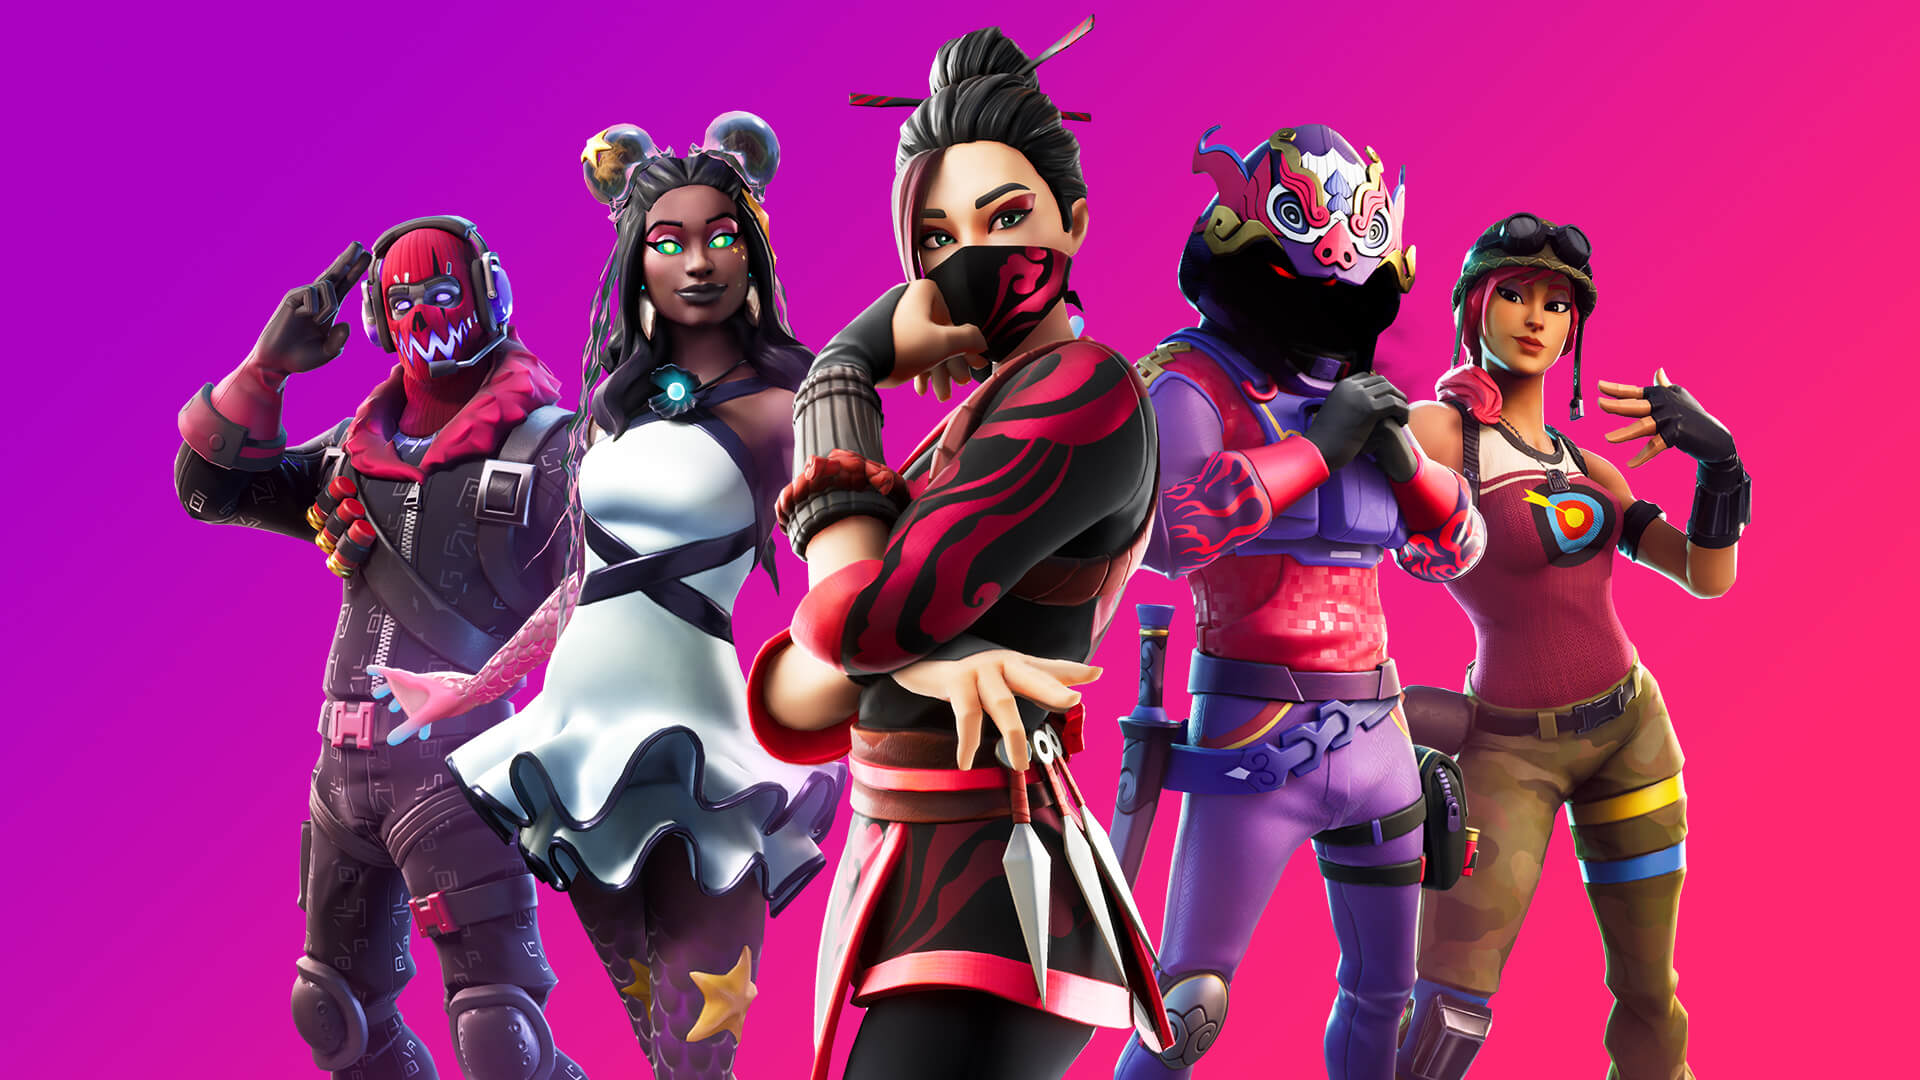 There won't be any in-person events in 2021 for Fortnite